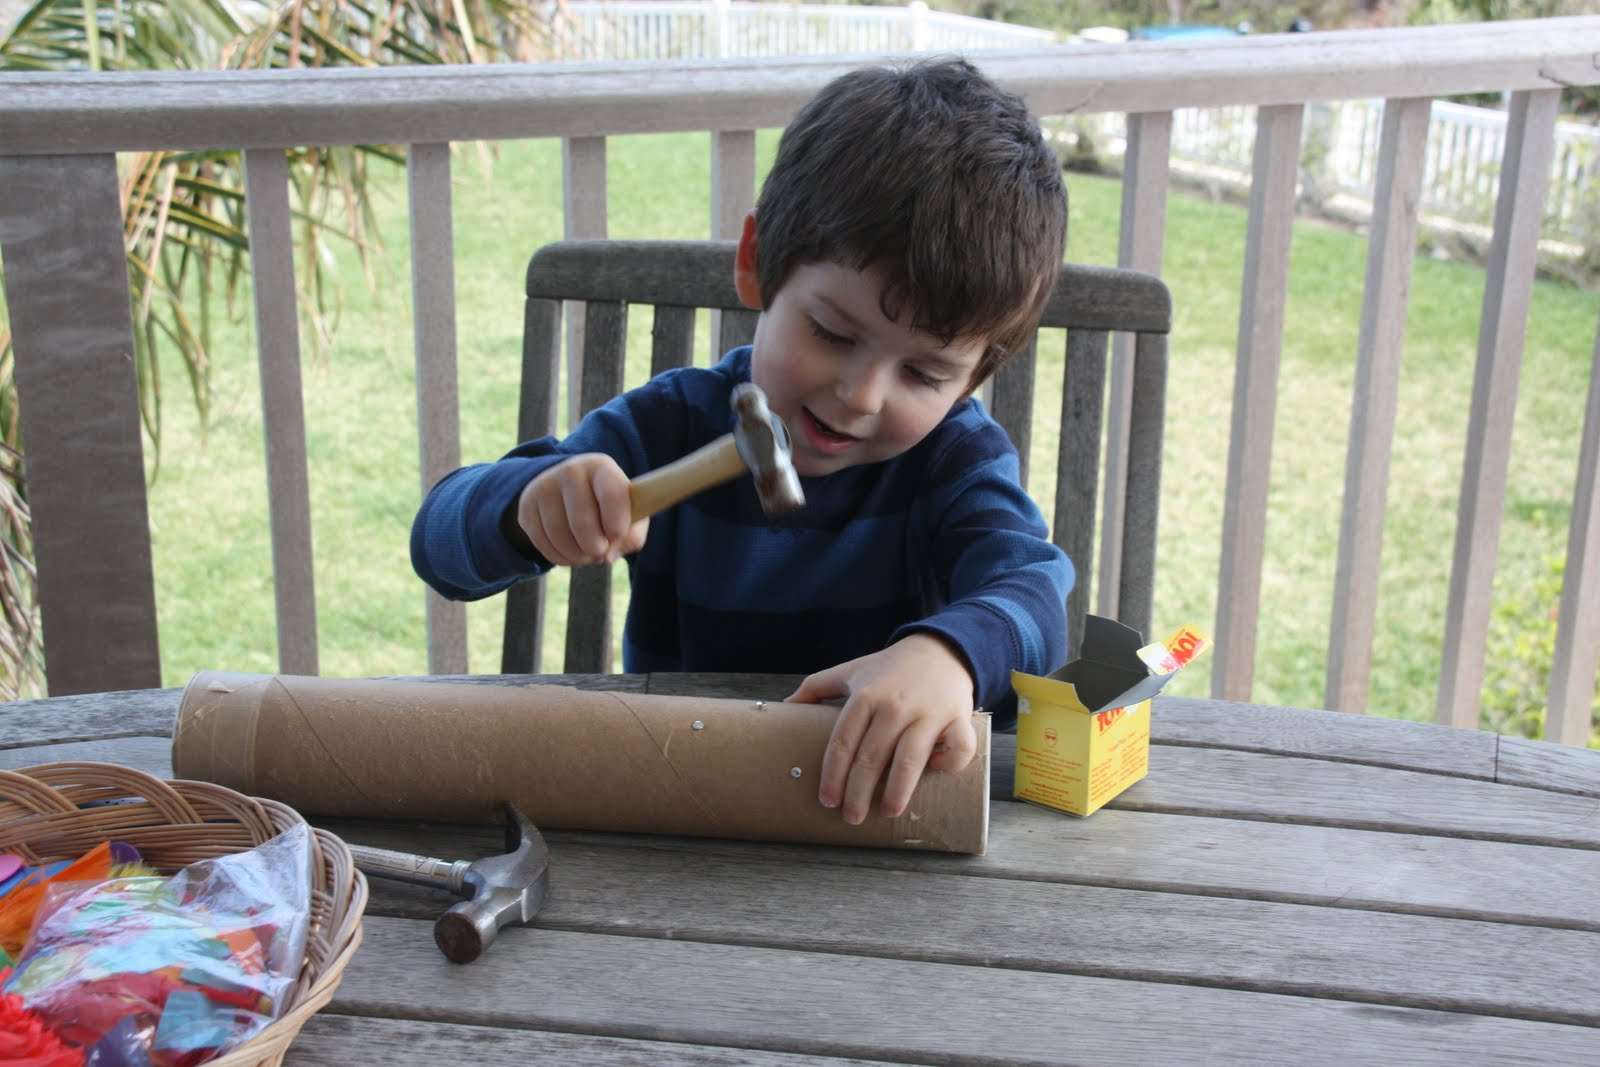 Homemade rain stick instrument